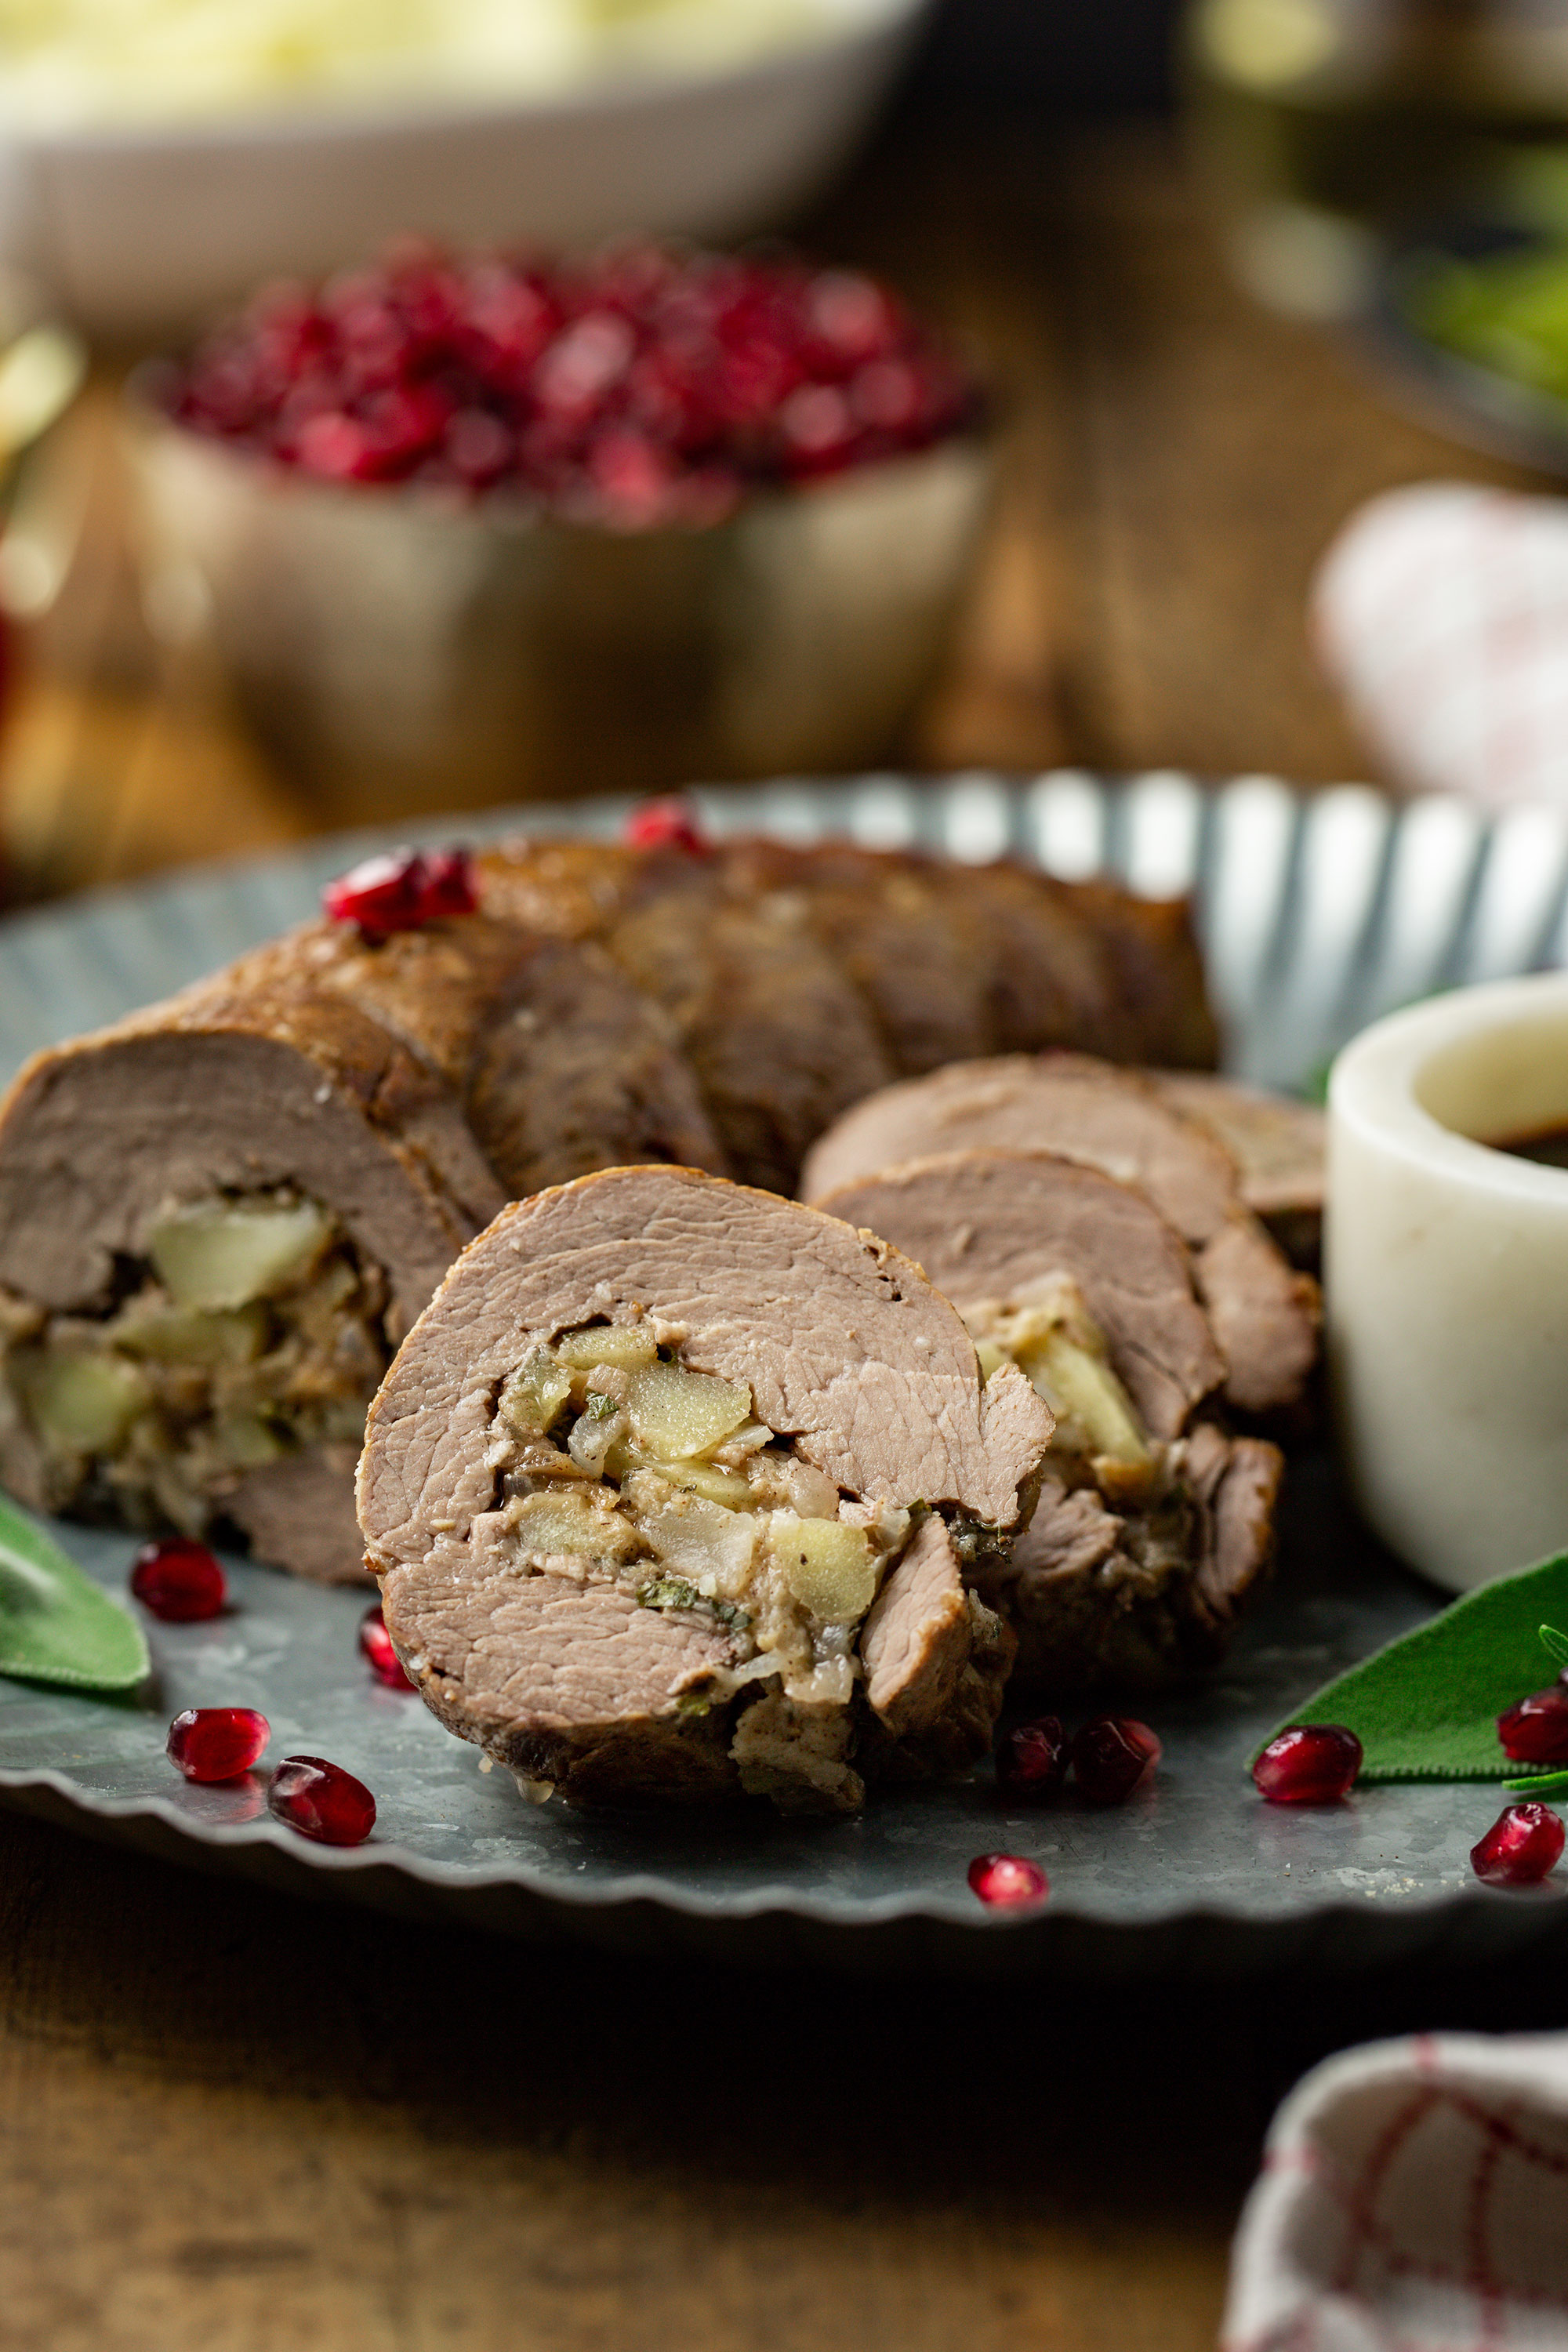 Pomegranate-Glazed & Apple Stuffed Veal Tenderloin